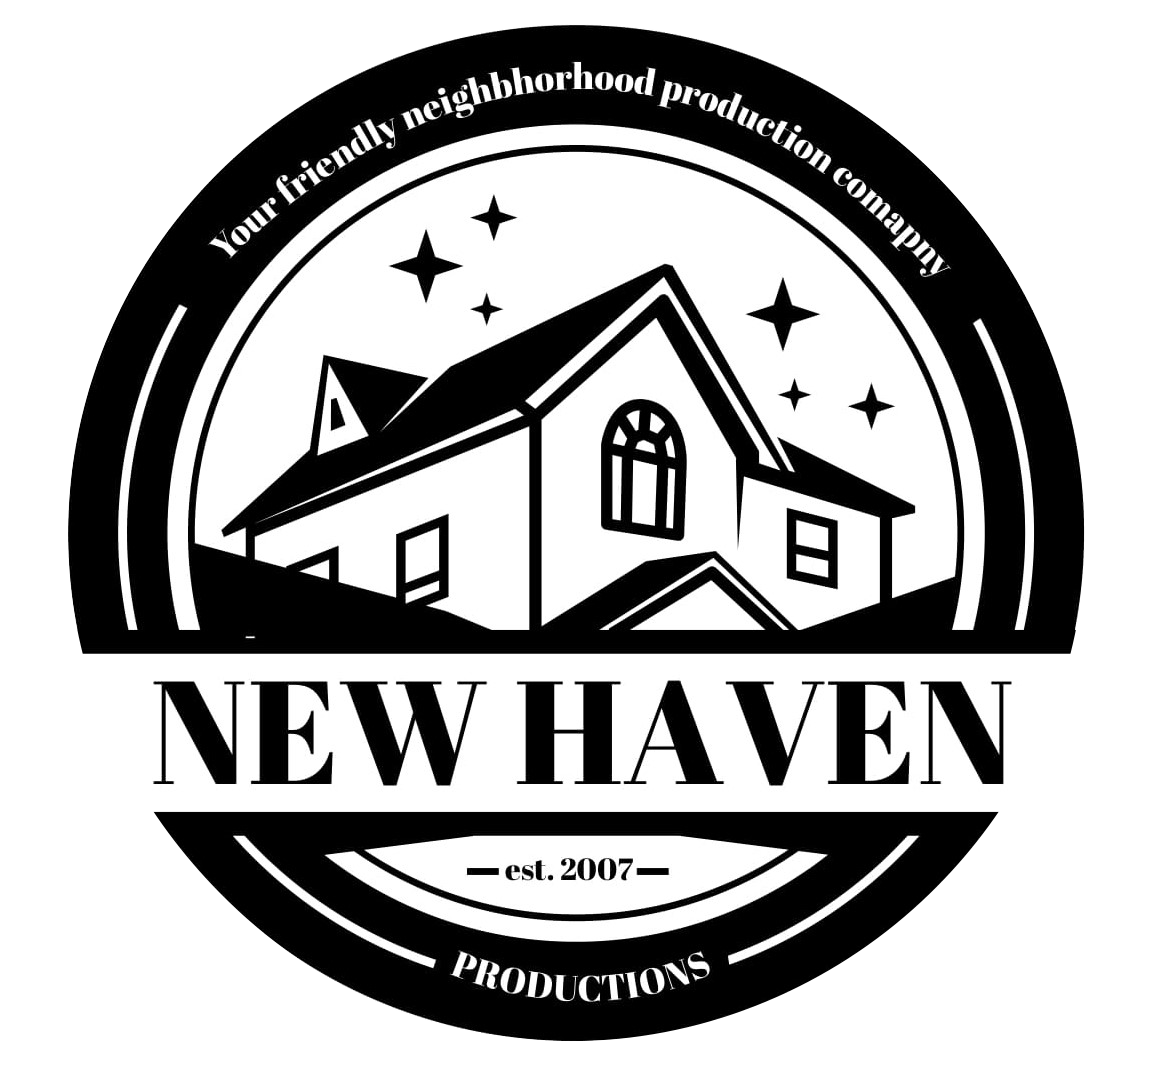 New haven productions